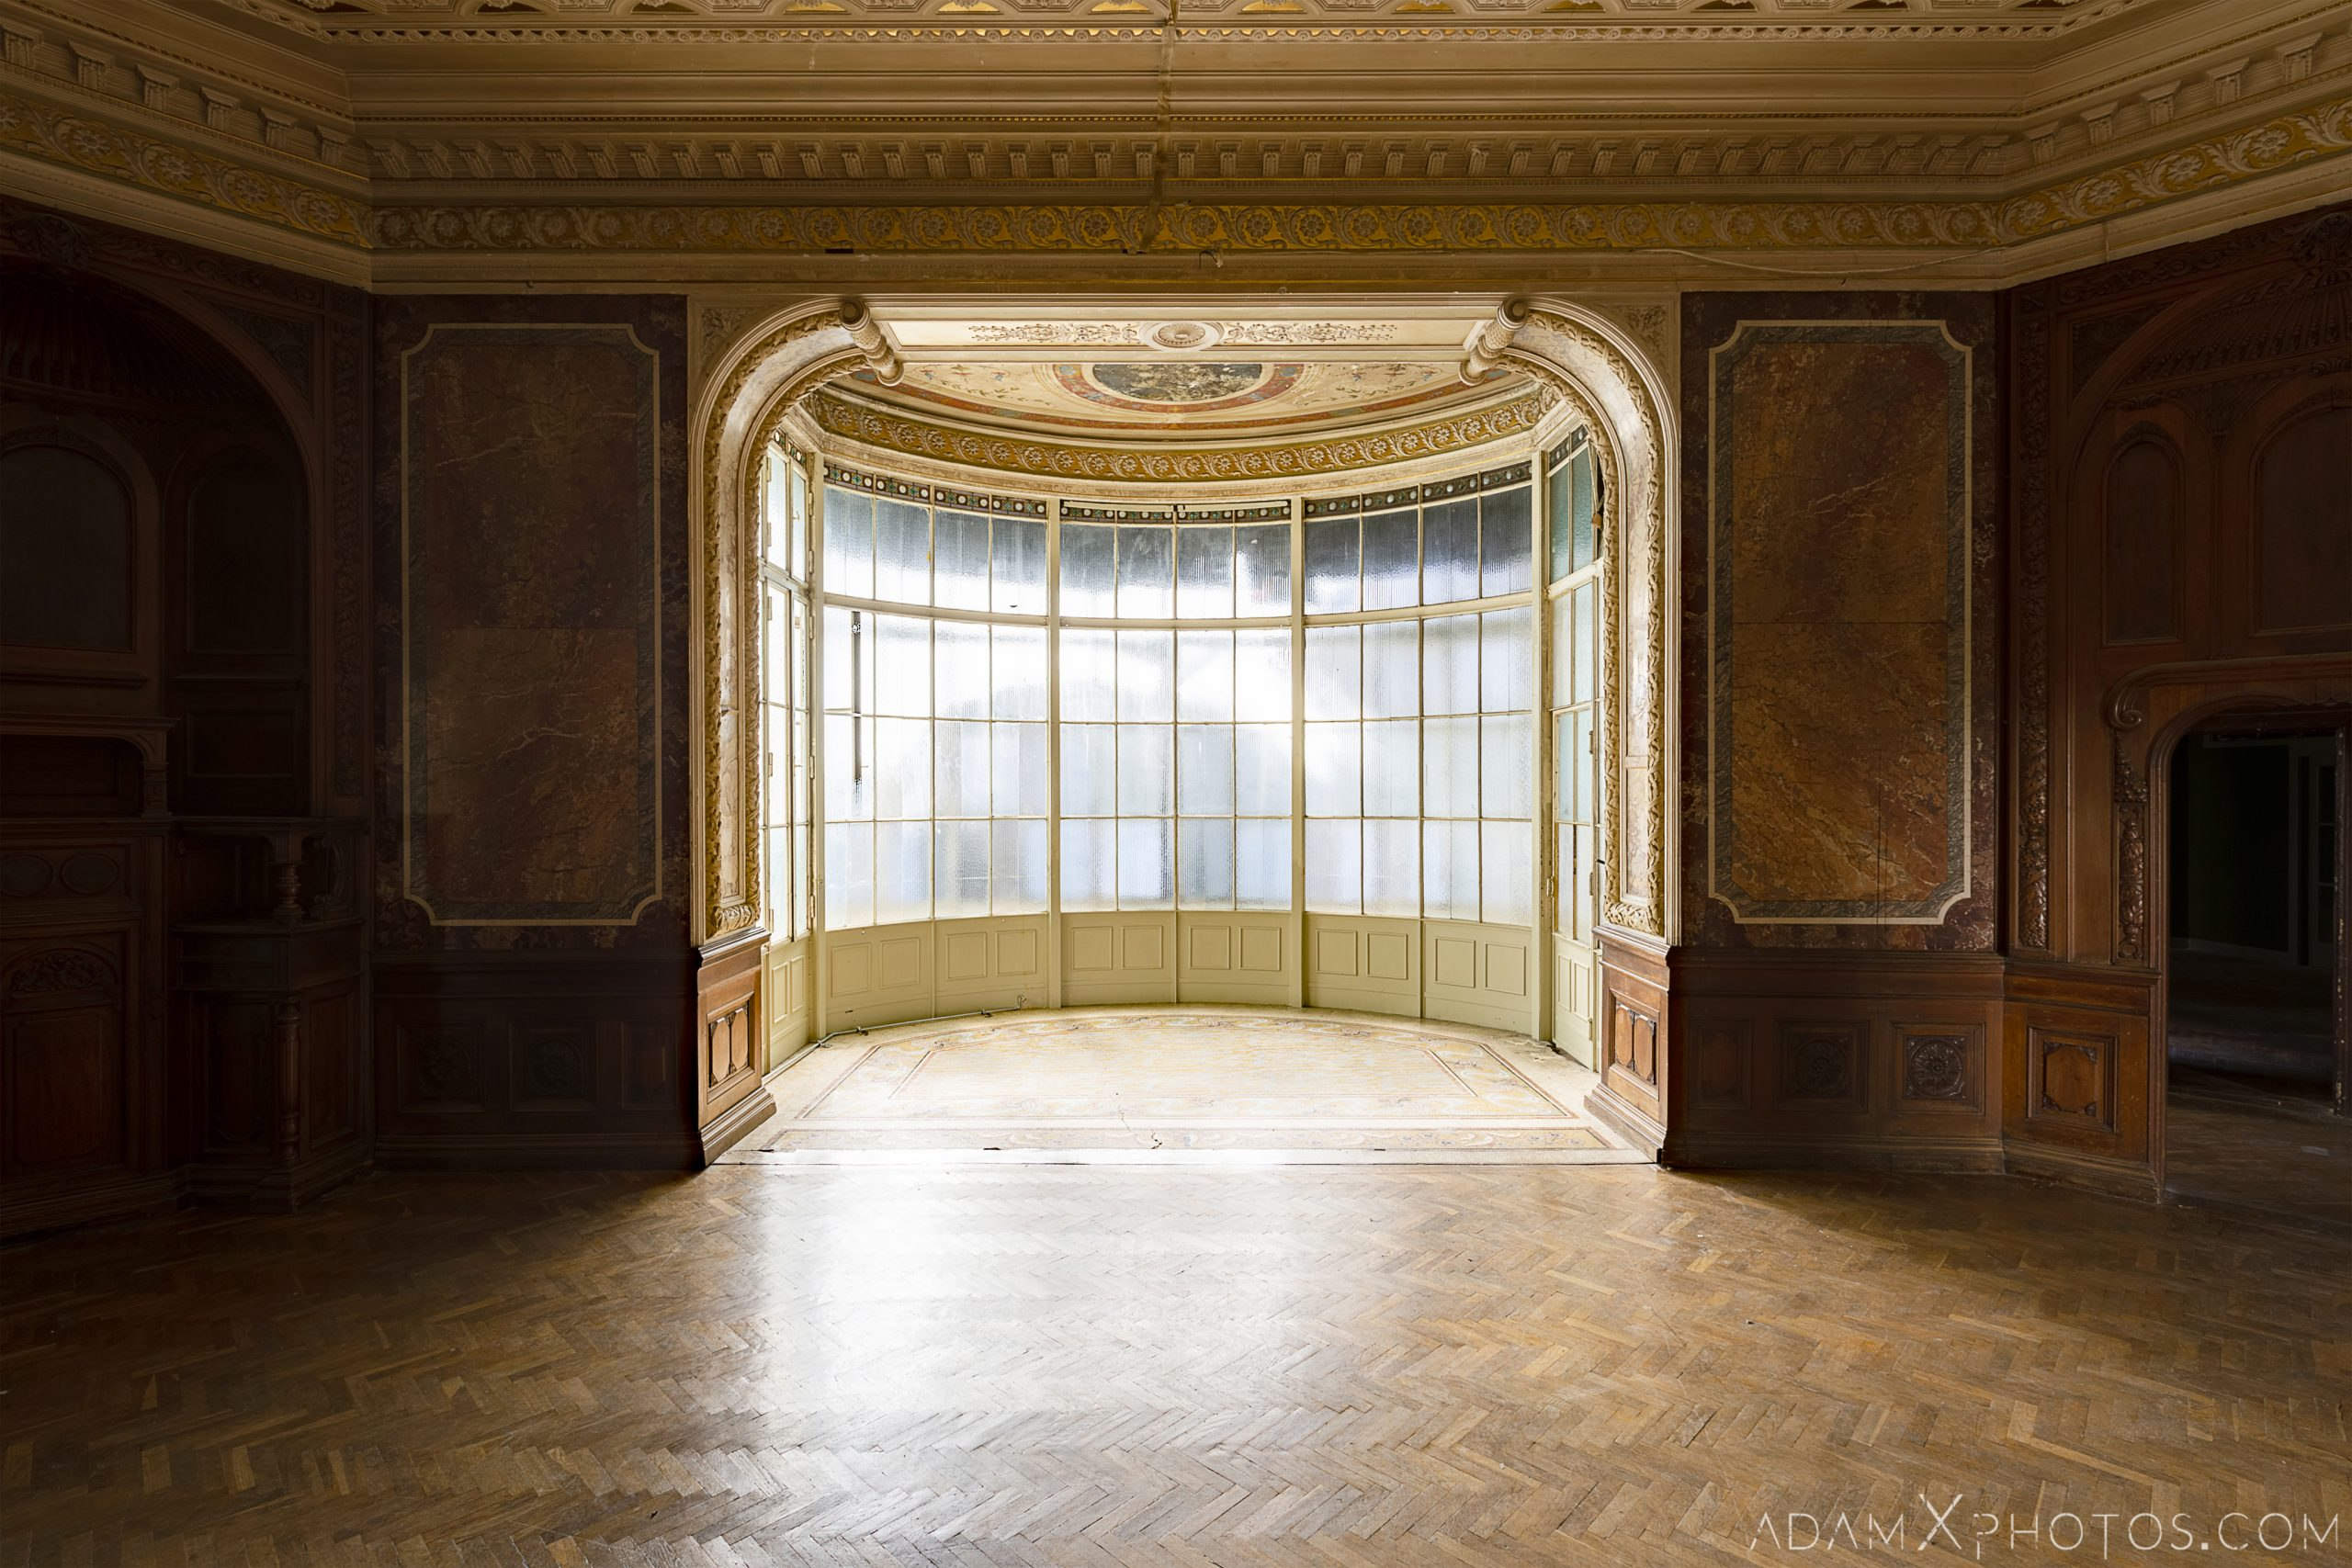 Bay window glass parquet flooring Adria Palace Budapest Hungary Adam X Urbex Urban Exploration Access 2018 Blade Runner 2049 Abandoned decay ruins lost forgotten derelict location creepy haunting eerie security ornate grand neo baroque